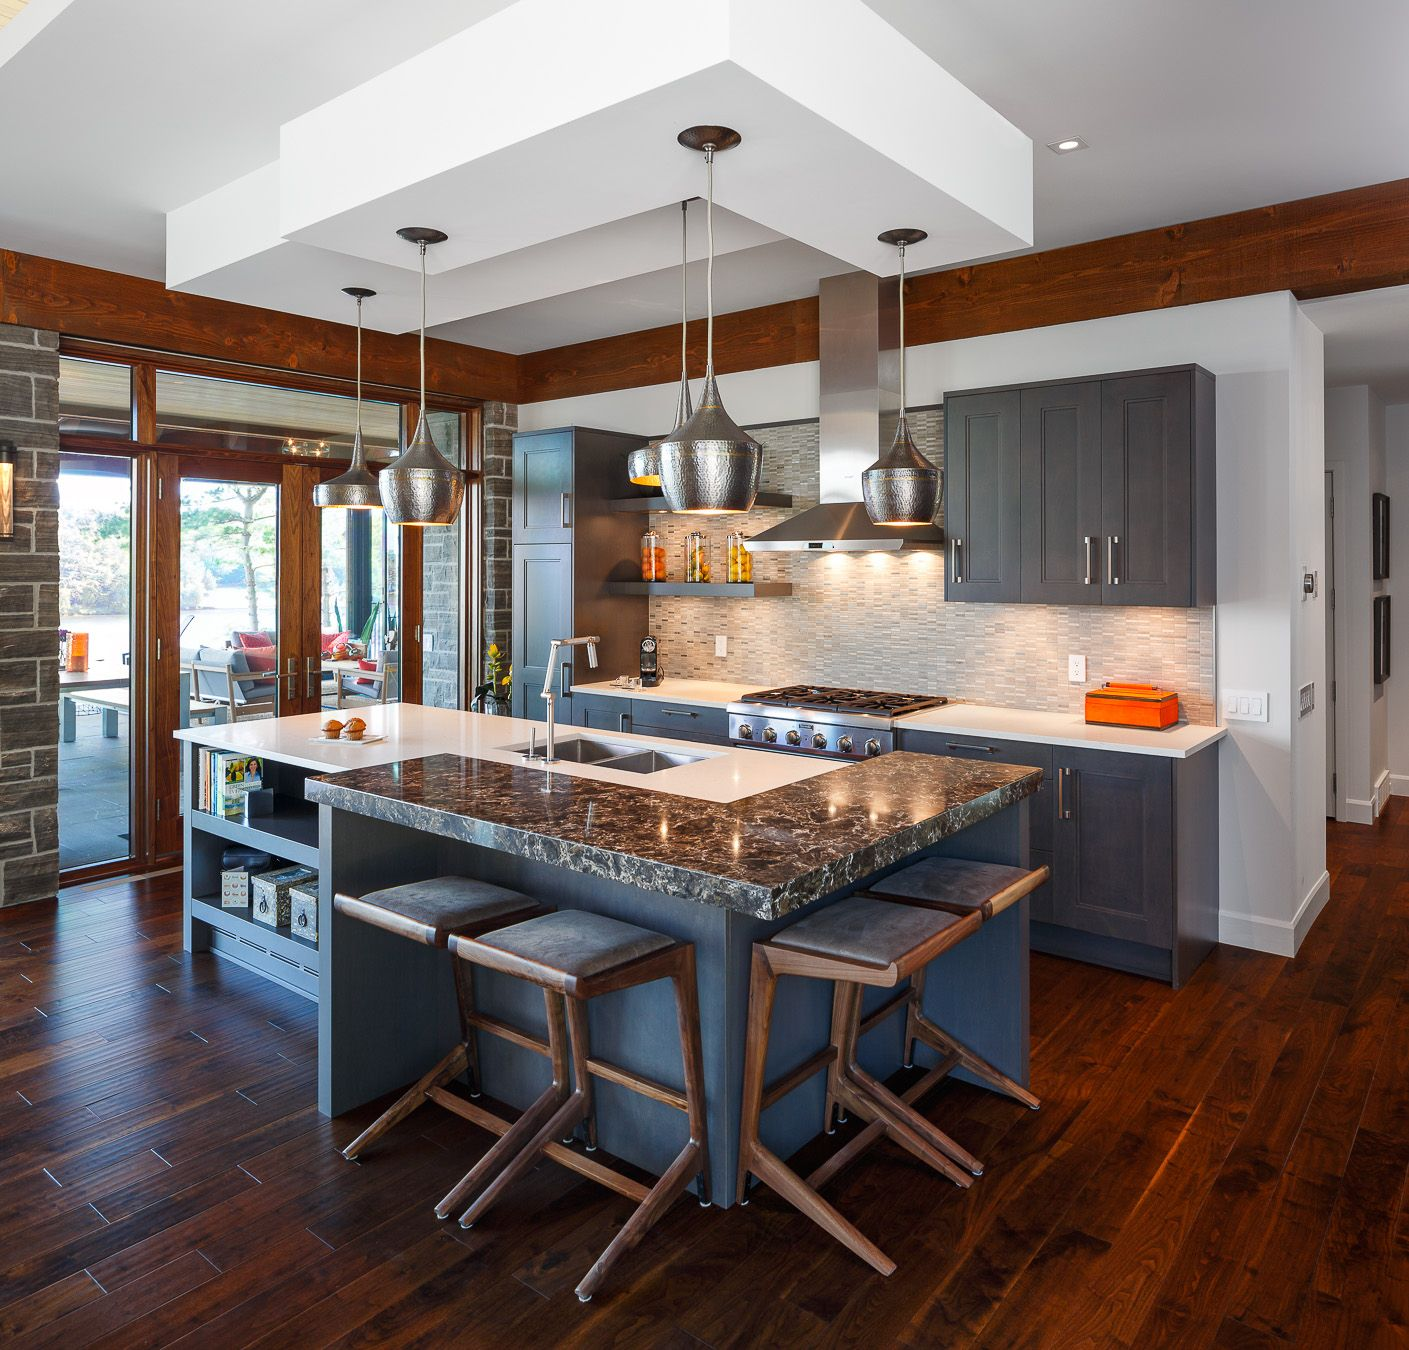 See How You Can Blend Two Styles Creatively In Your Kitchen U0026 Bath Remodel.  Using